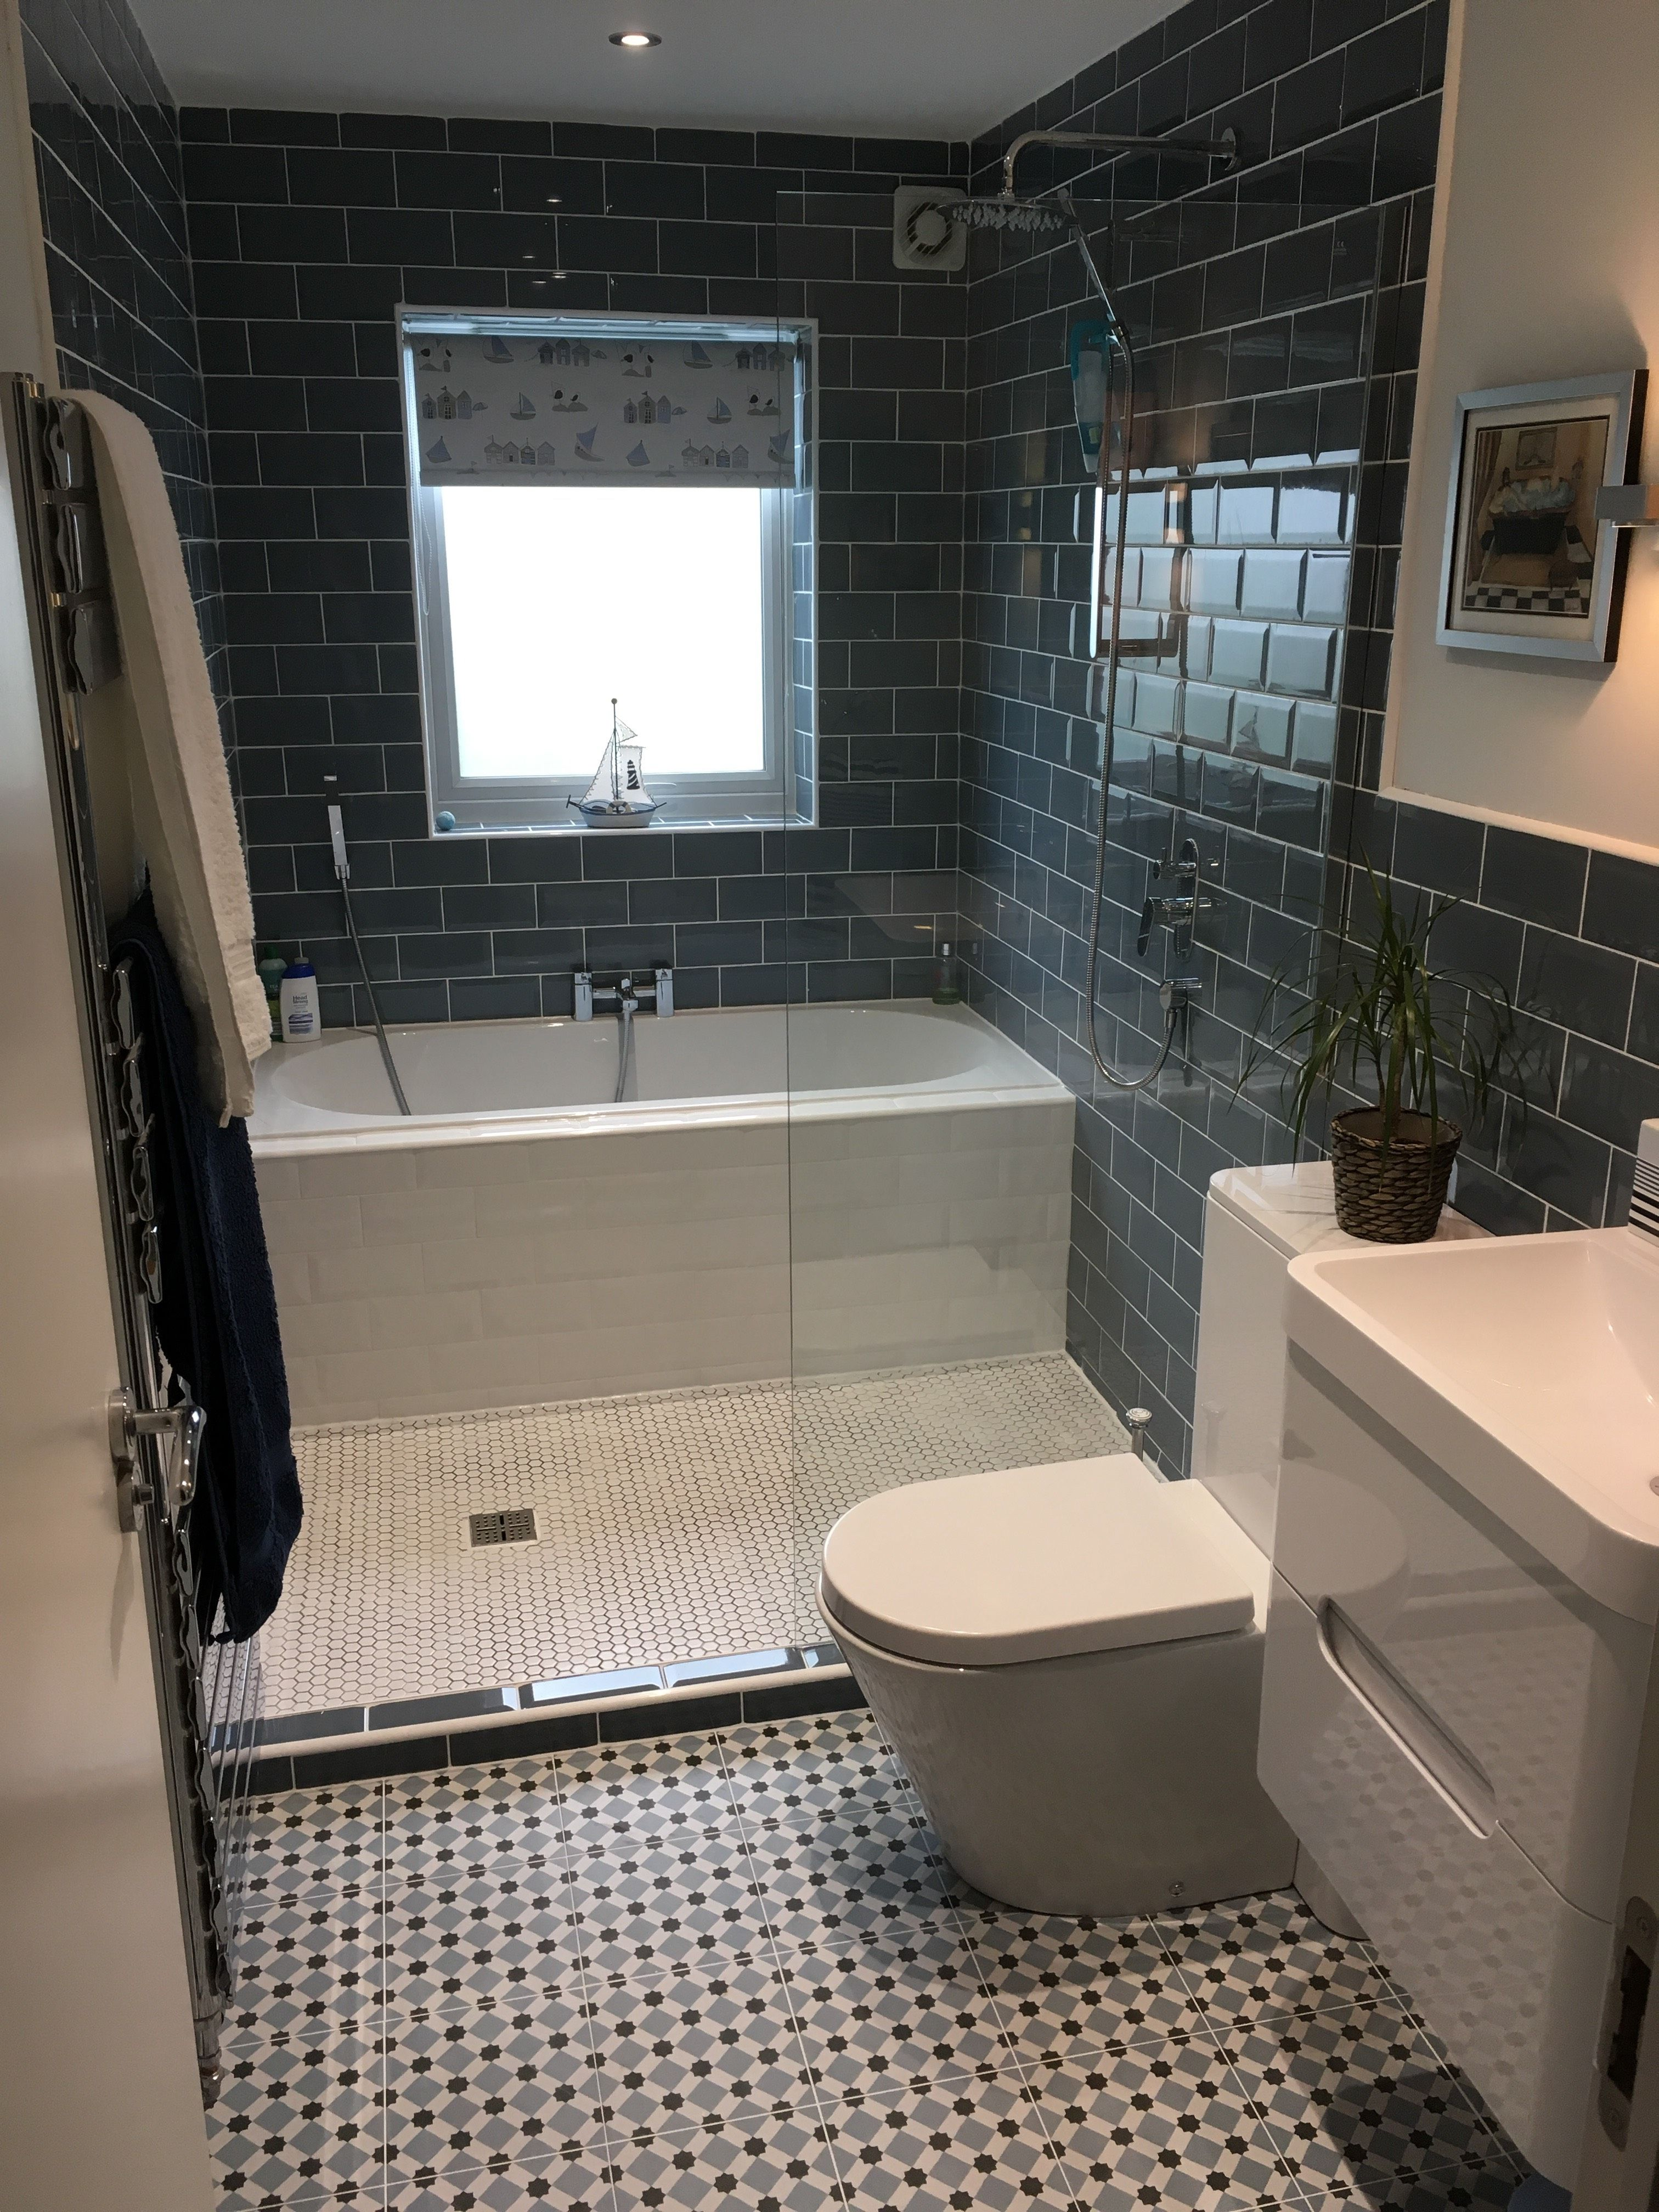 In the bathroom while taking a shower or a well deserved bubble bath - Look At The Great Use Of Space With A Bath And A Shower In This Innovative